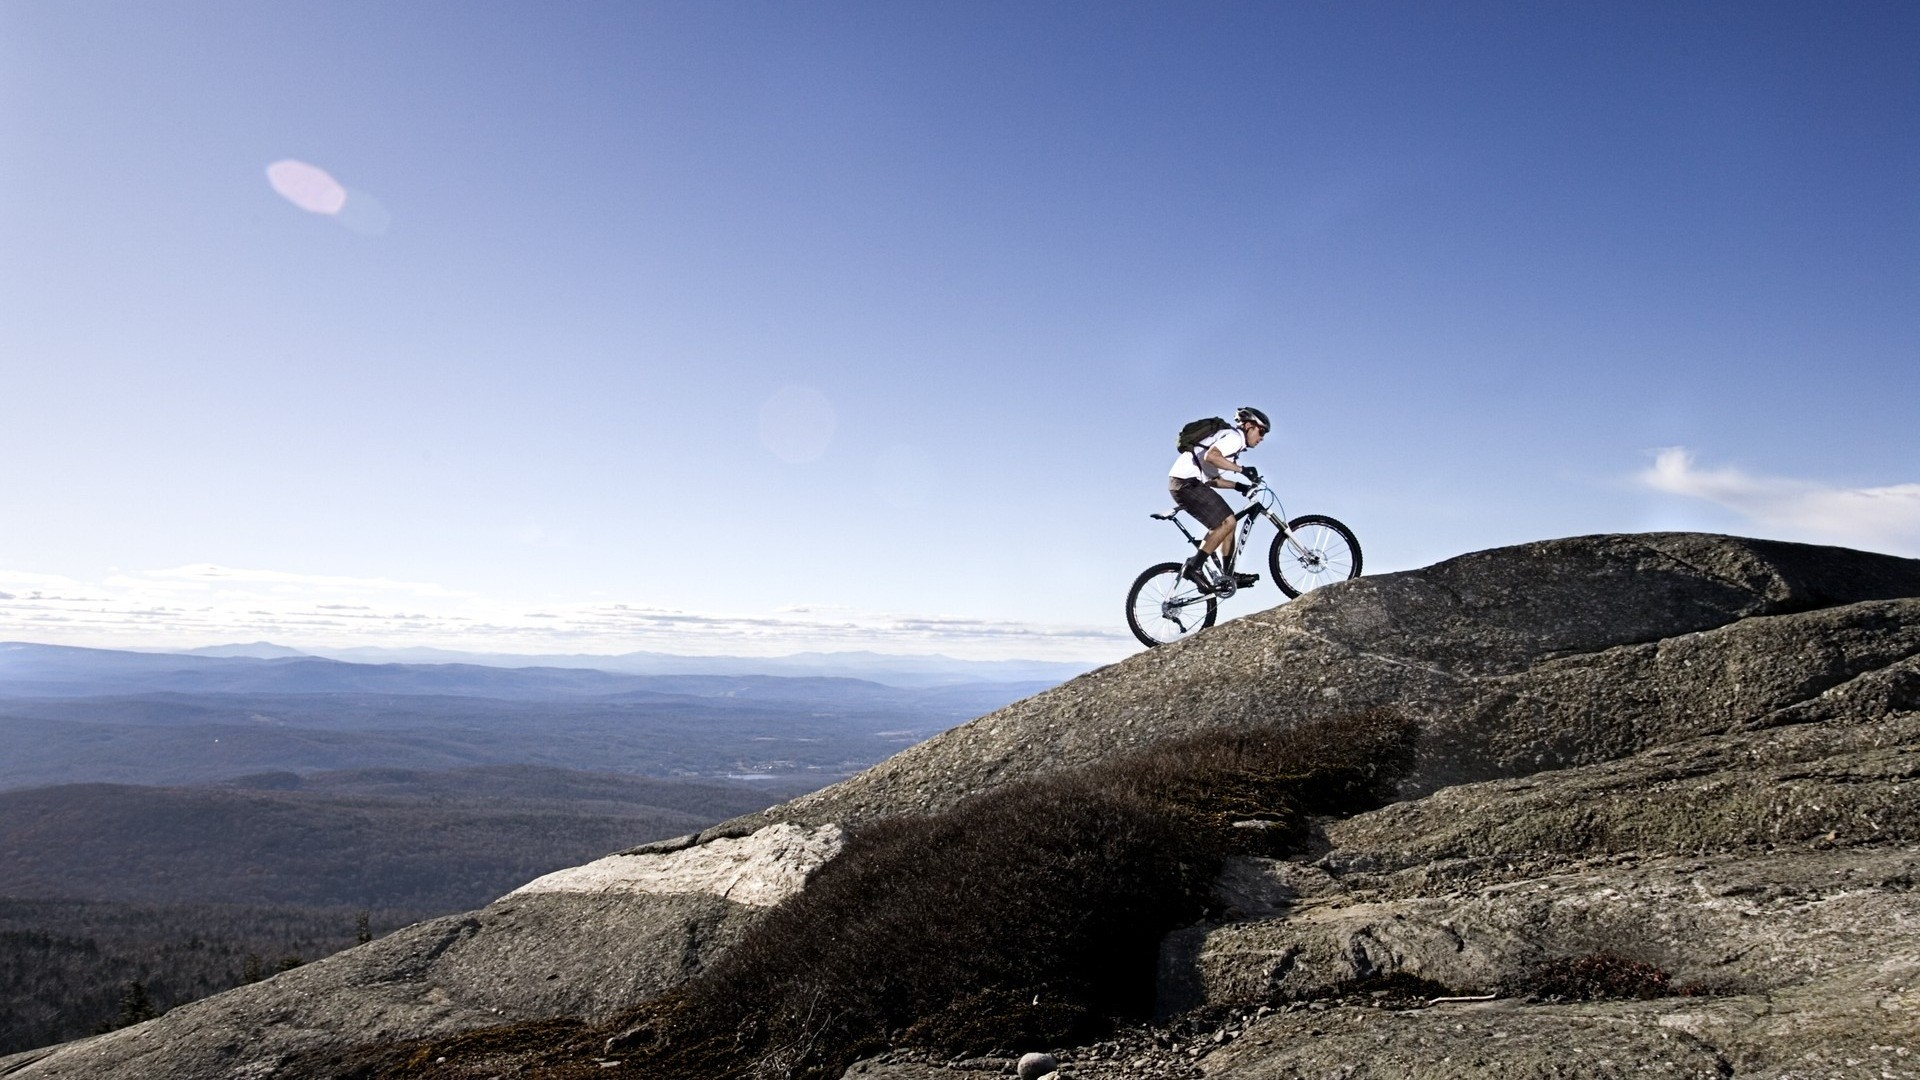 Mountain Bike. How to set wallpaper on your desktop? Click the  download link from above and set the wallpaper on the desktop from your OS.